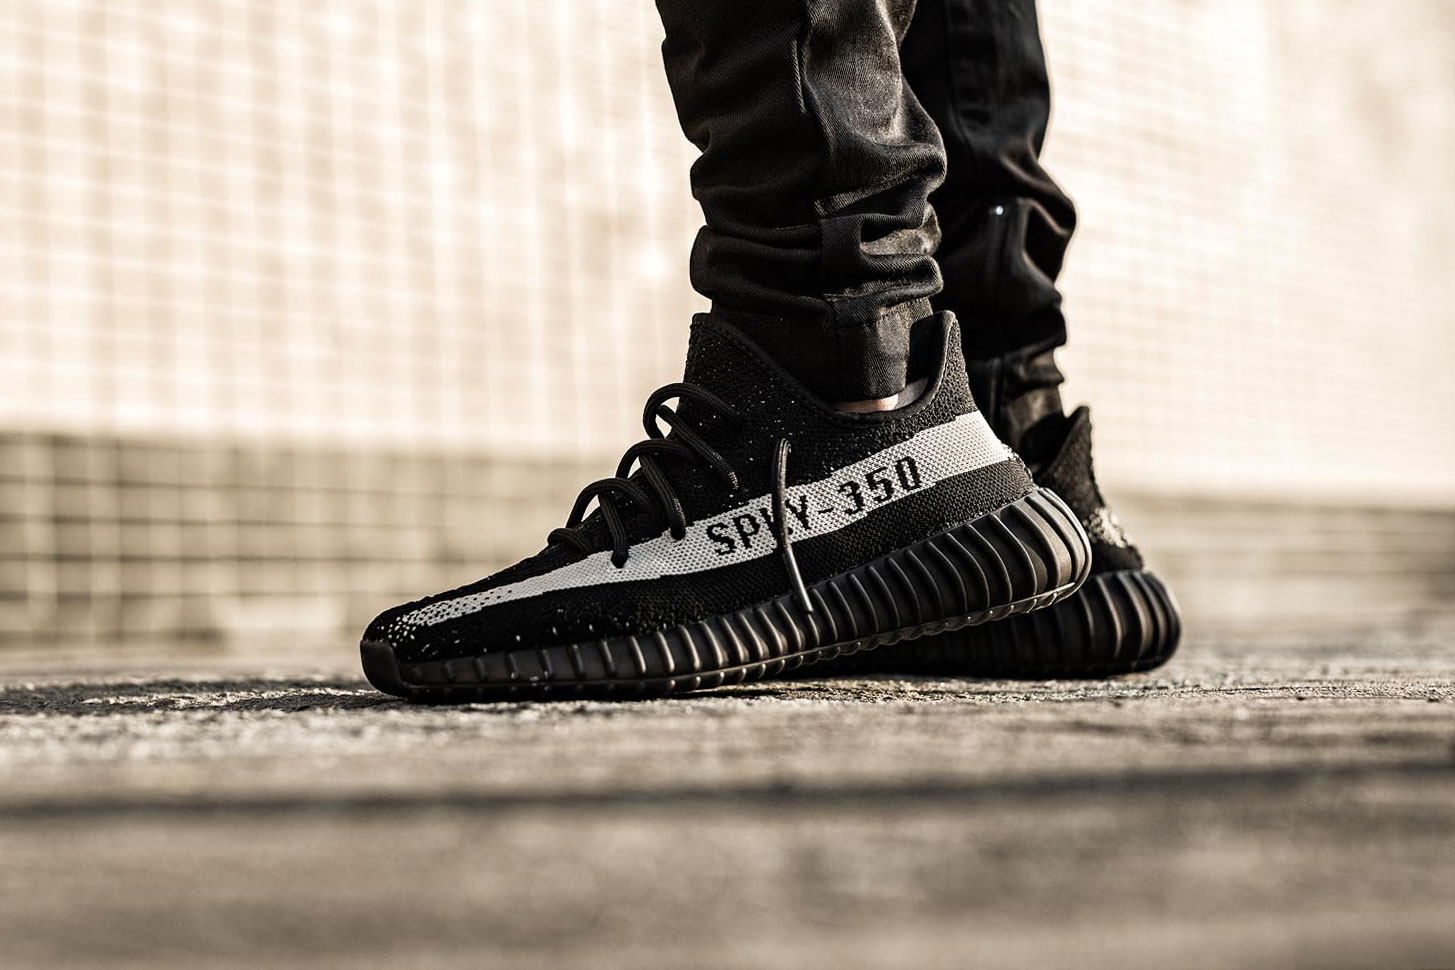 Adidas Yeezy Boost 350 v2 'Olive Green' (BY 9611) RISE